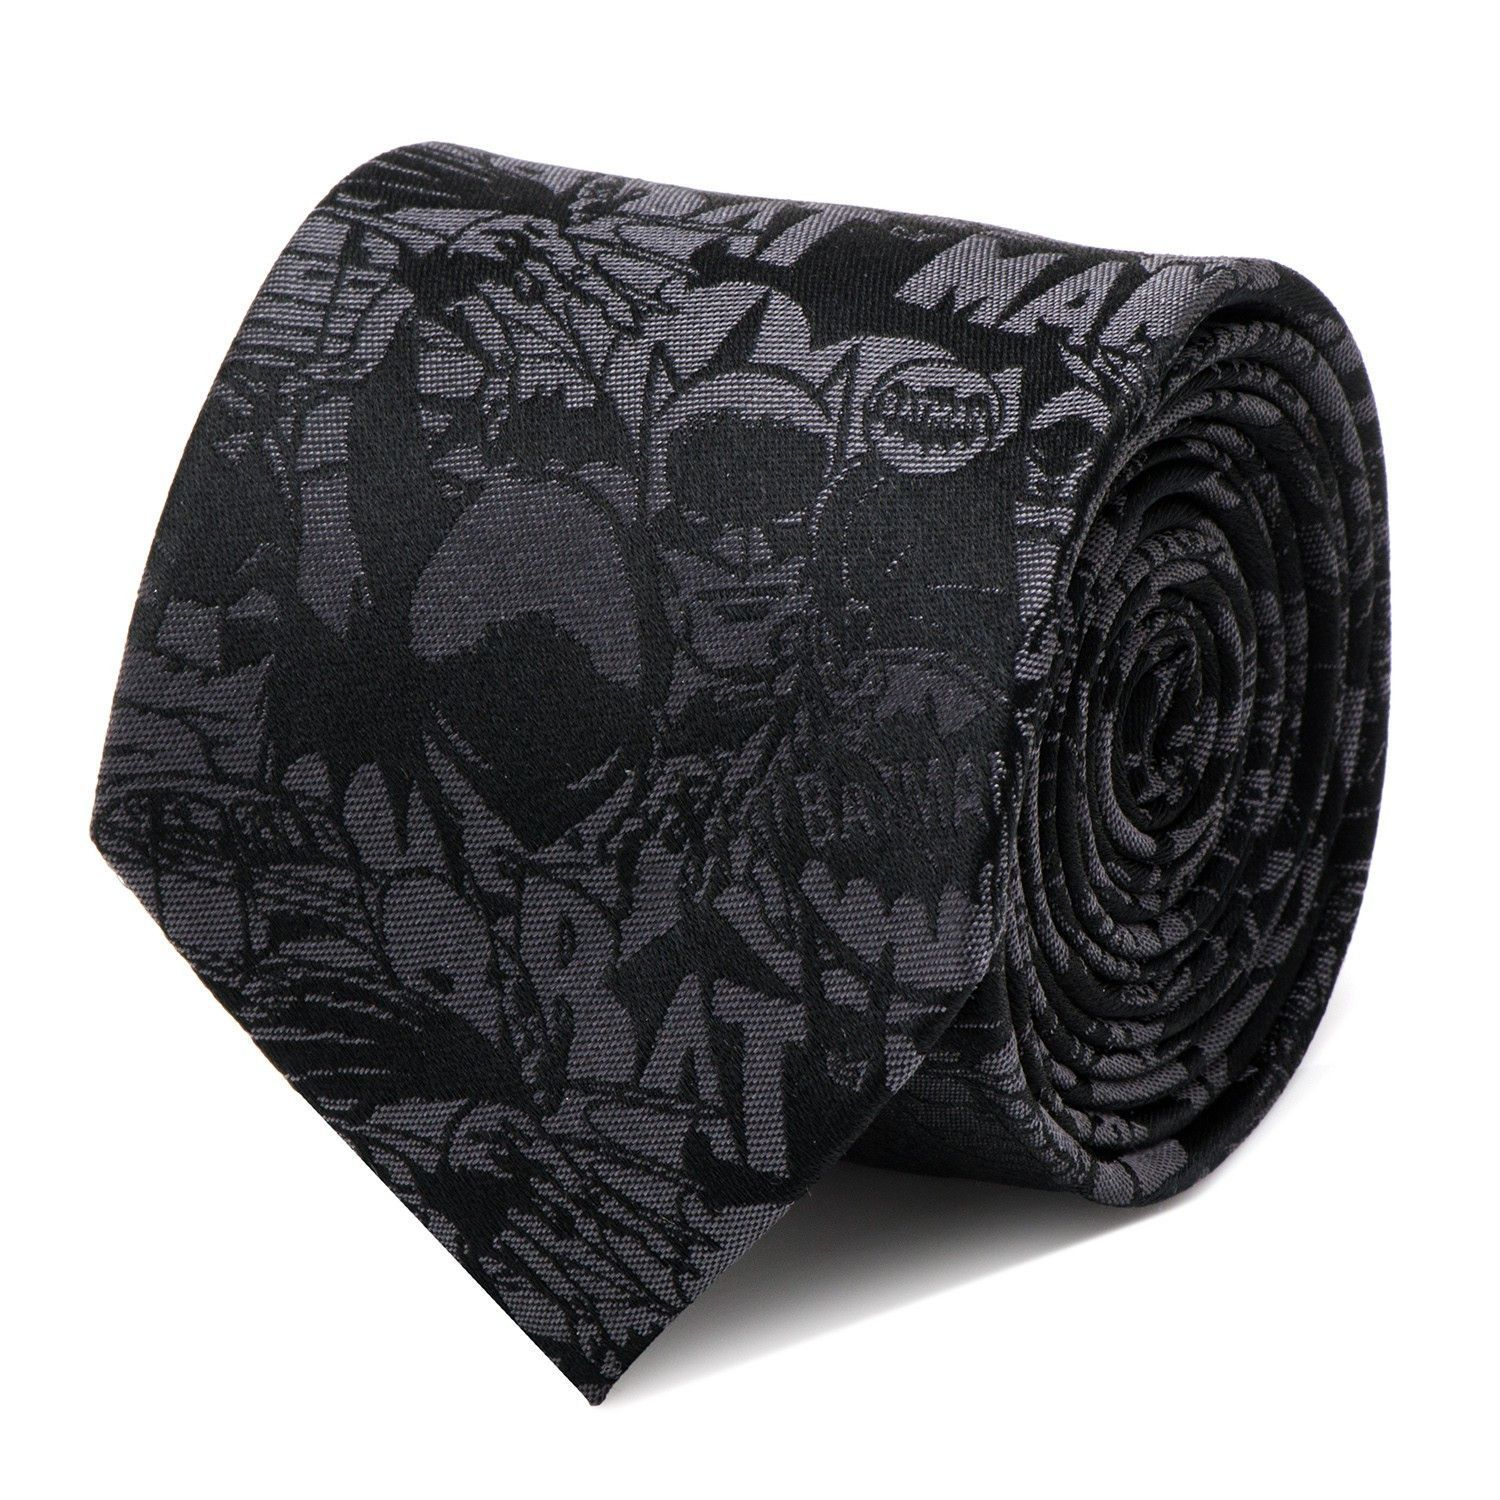 Need a cool black tie with your favorite superhero on it? Look no further than this awesome Batman Comic Mens Tie that has a collage of Batman all over it. Makes a great gift for the holidays, birthda